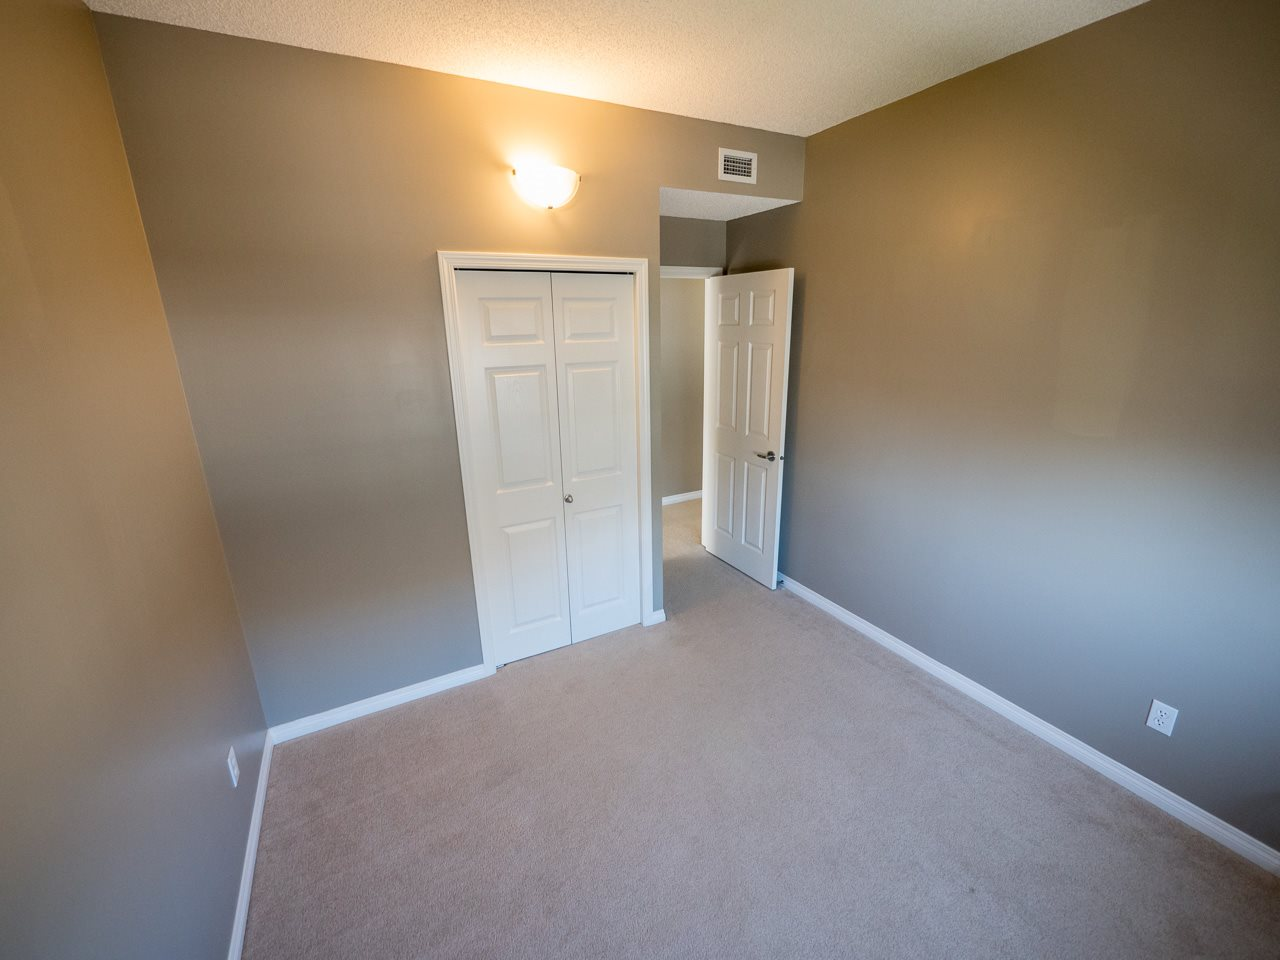 Photo 16: 71 3040 SPENCE Way in Edmonton: Zone 53 Townhouse for sale : MLS(r) # E4063695